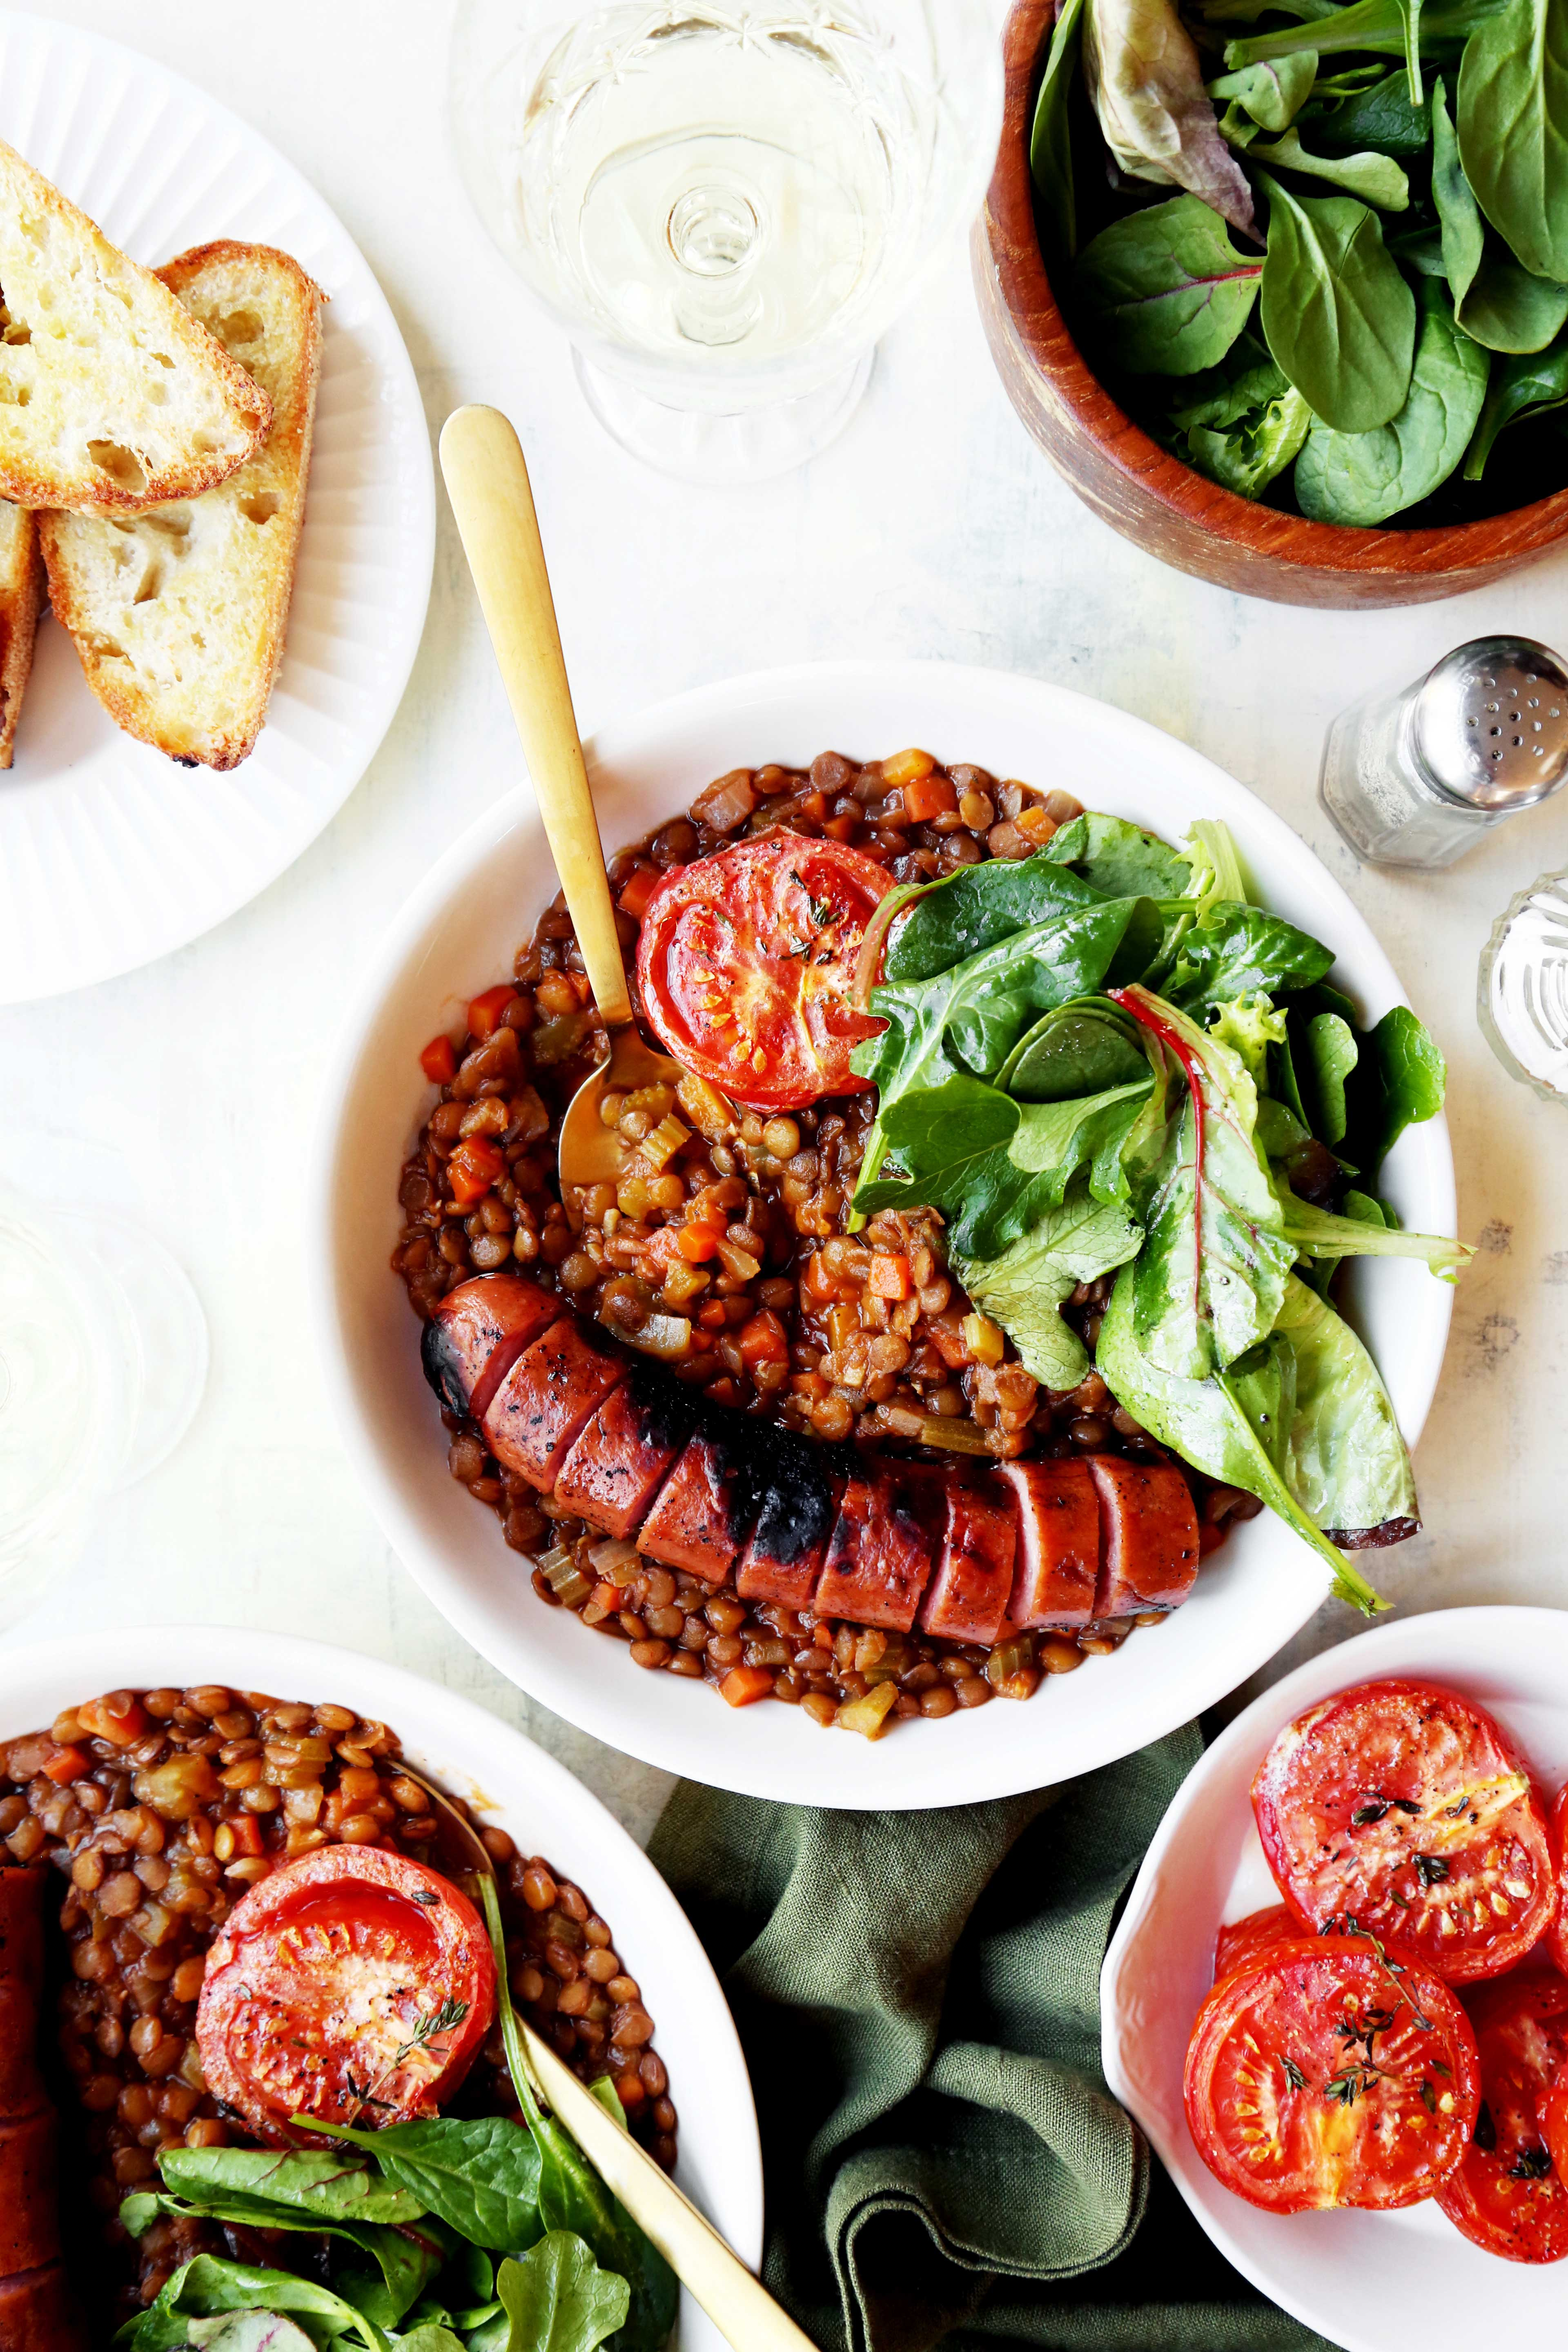 French Lentil Stew with Sausage